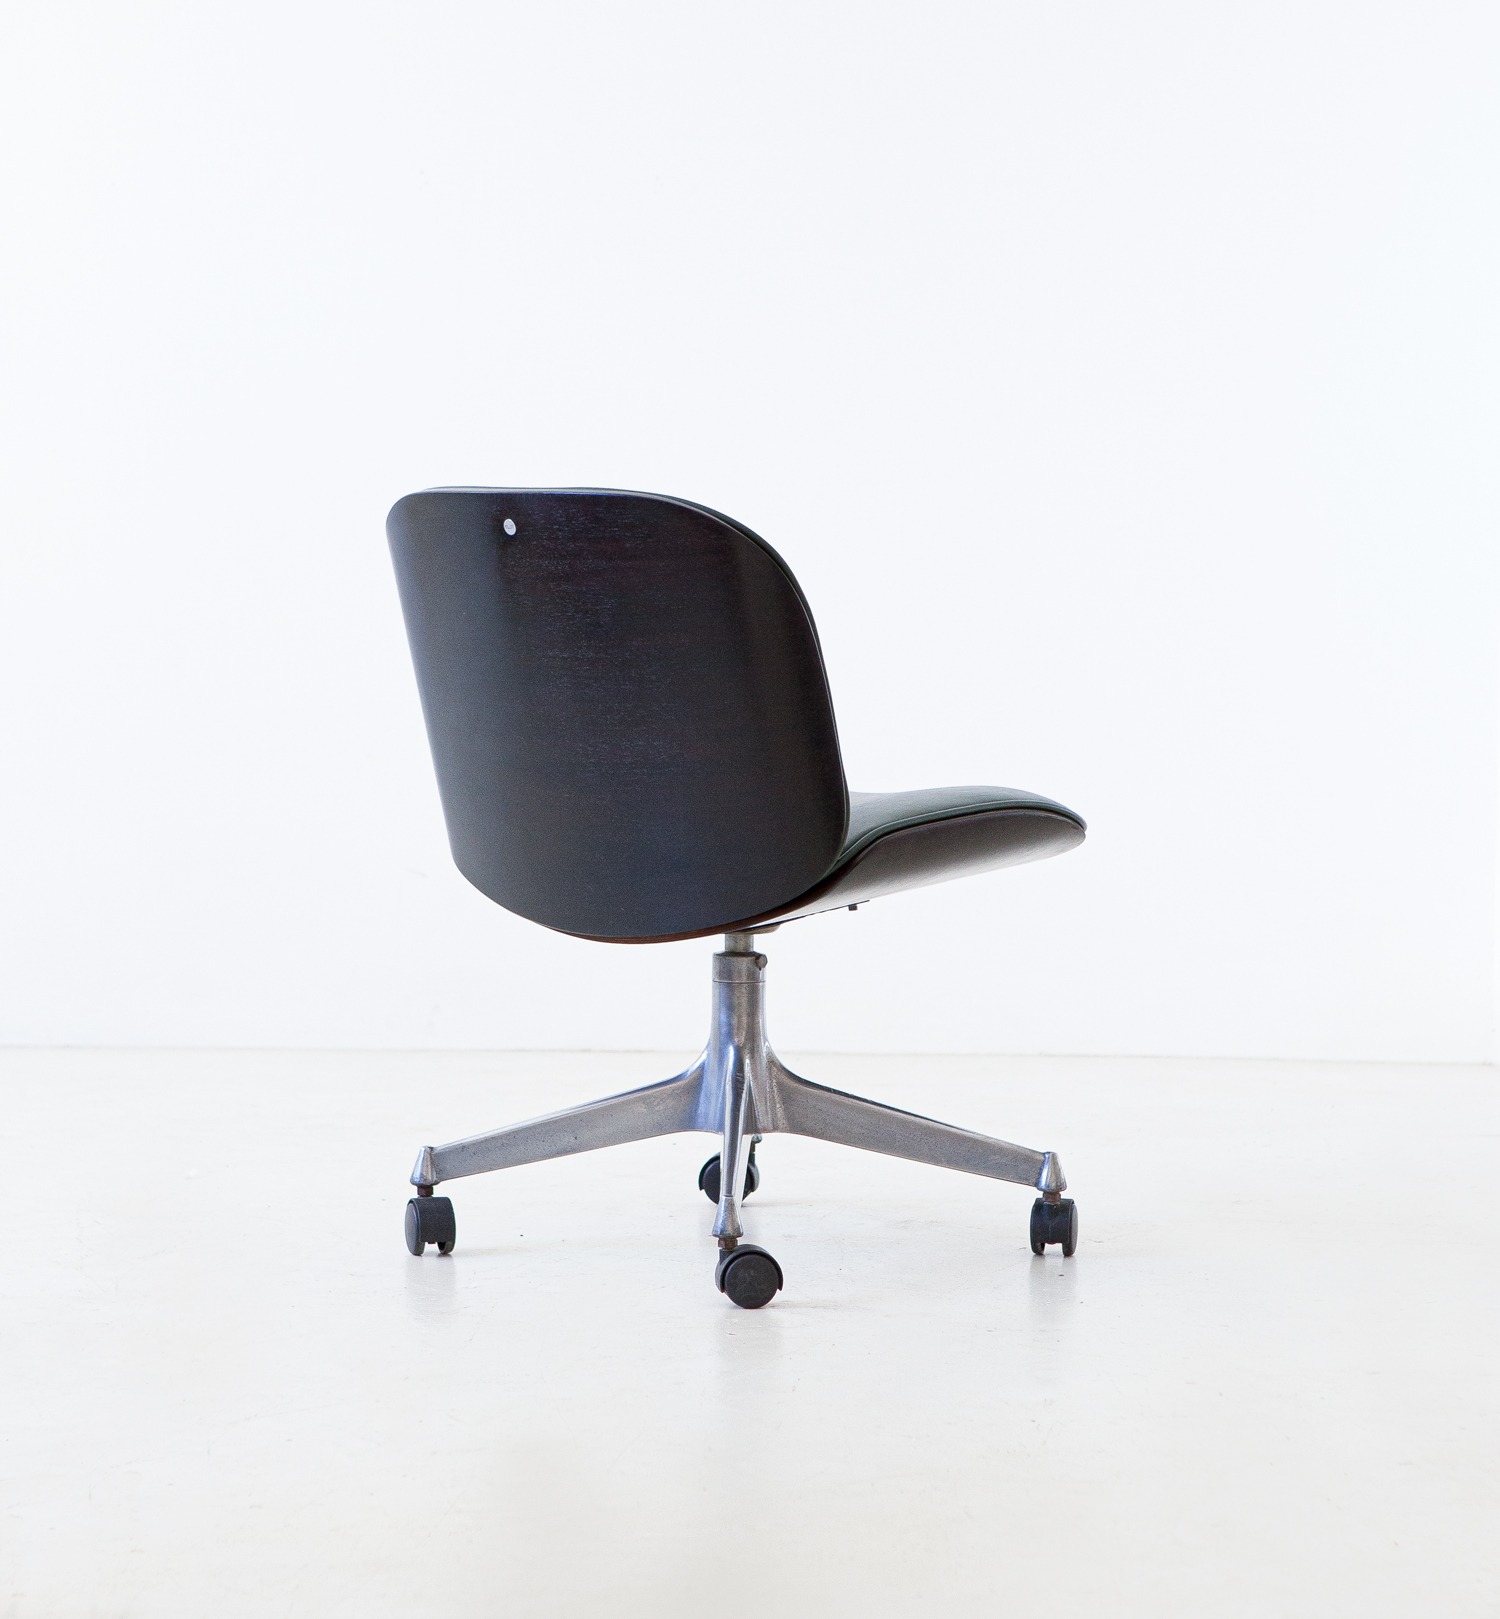 1950s-swivel-desk-chair-by-Ico-Parisi-for-M.i.M.-3-se331